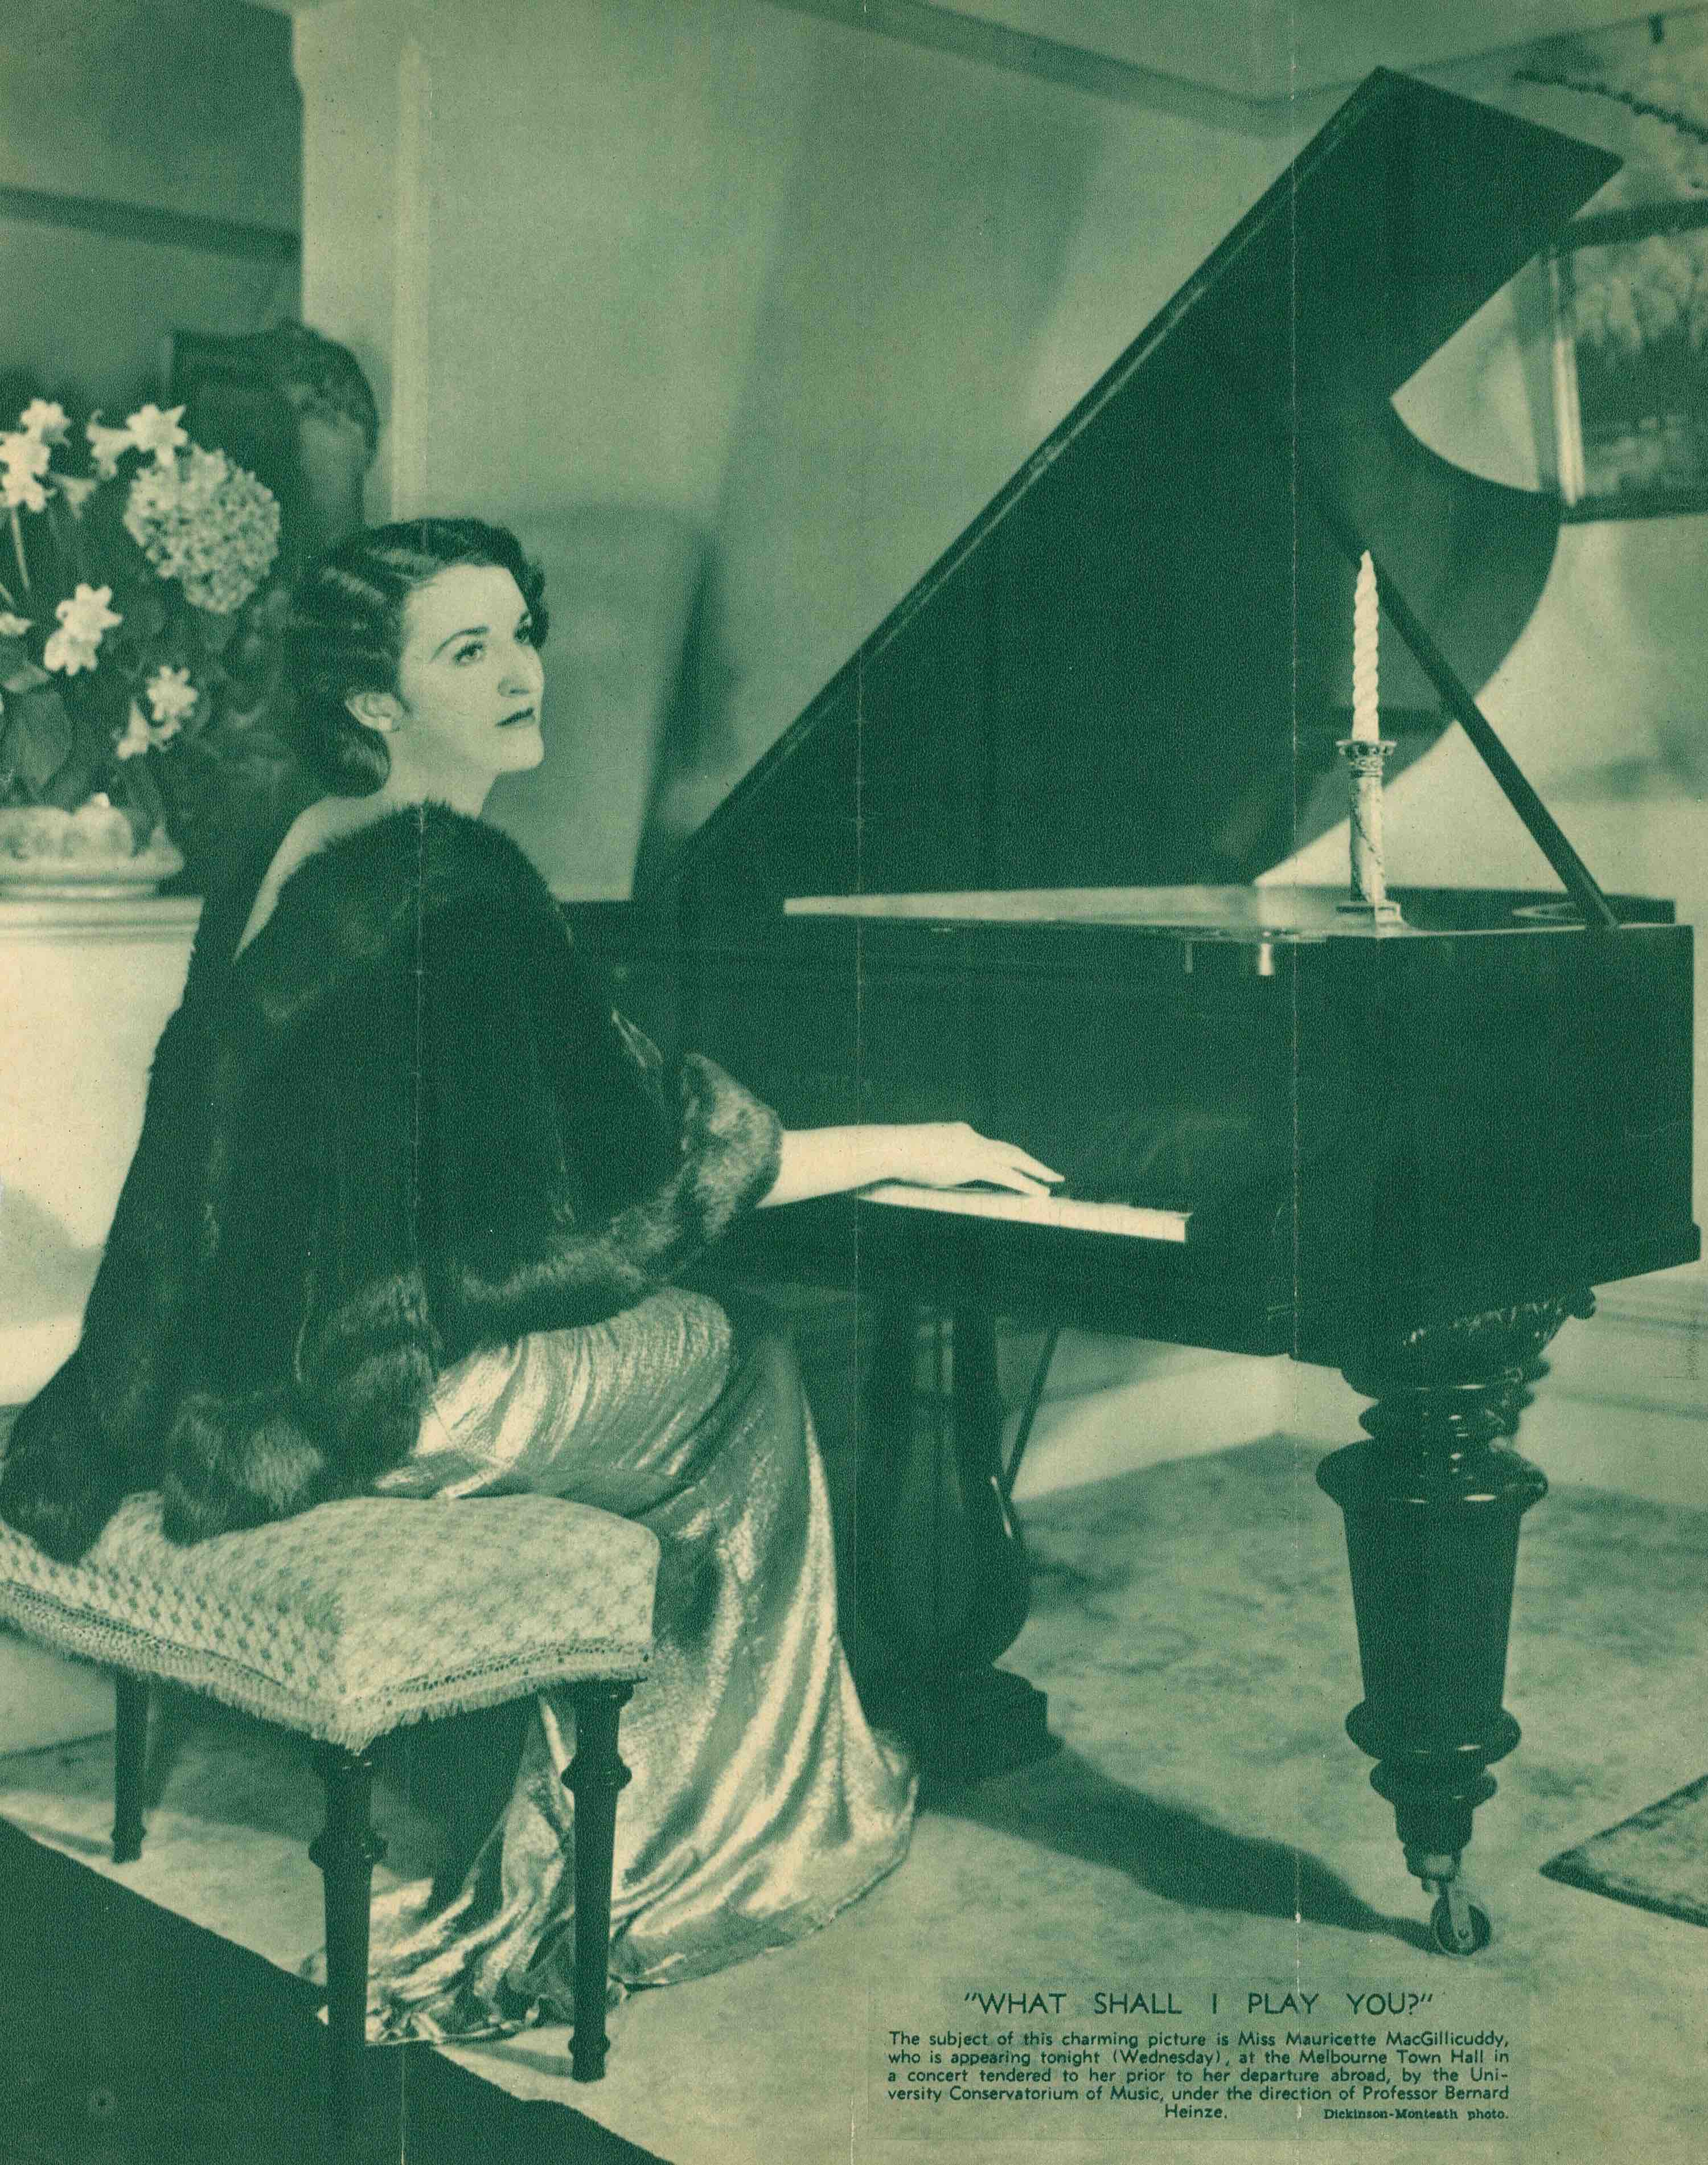 UniM Bail Music RB ef 780.78945 CONS (loose; accomp no. 5) <br> Dickinson-Monteath Studio, photographer ; Table Talk, 12 March 1936, p. V <br> Pianist Mauricette MacGillicuddy prior to her departure abroad  <br> Melbourne , 1936 <br> Press clipping